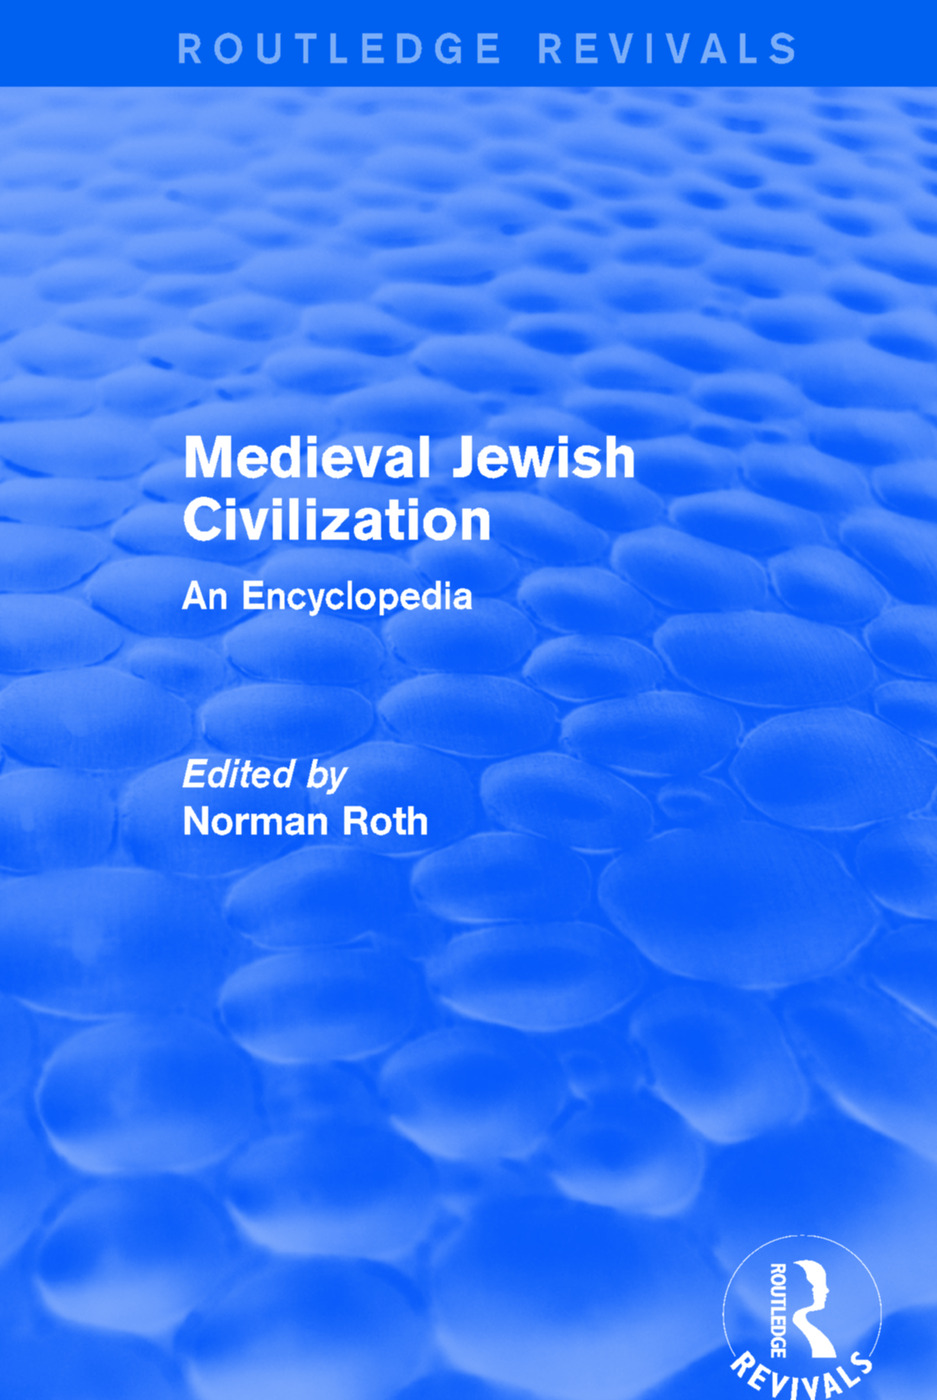 Routledge Revivals: Medieval Jewish Civilization (2003): An Encyclopedia book cover